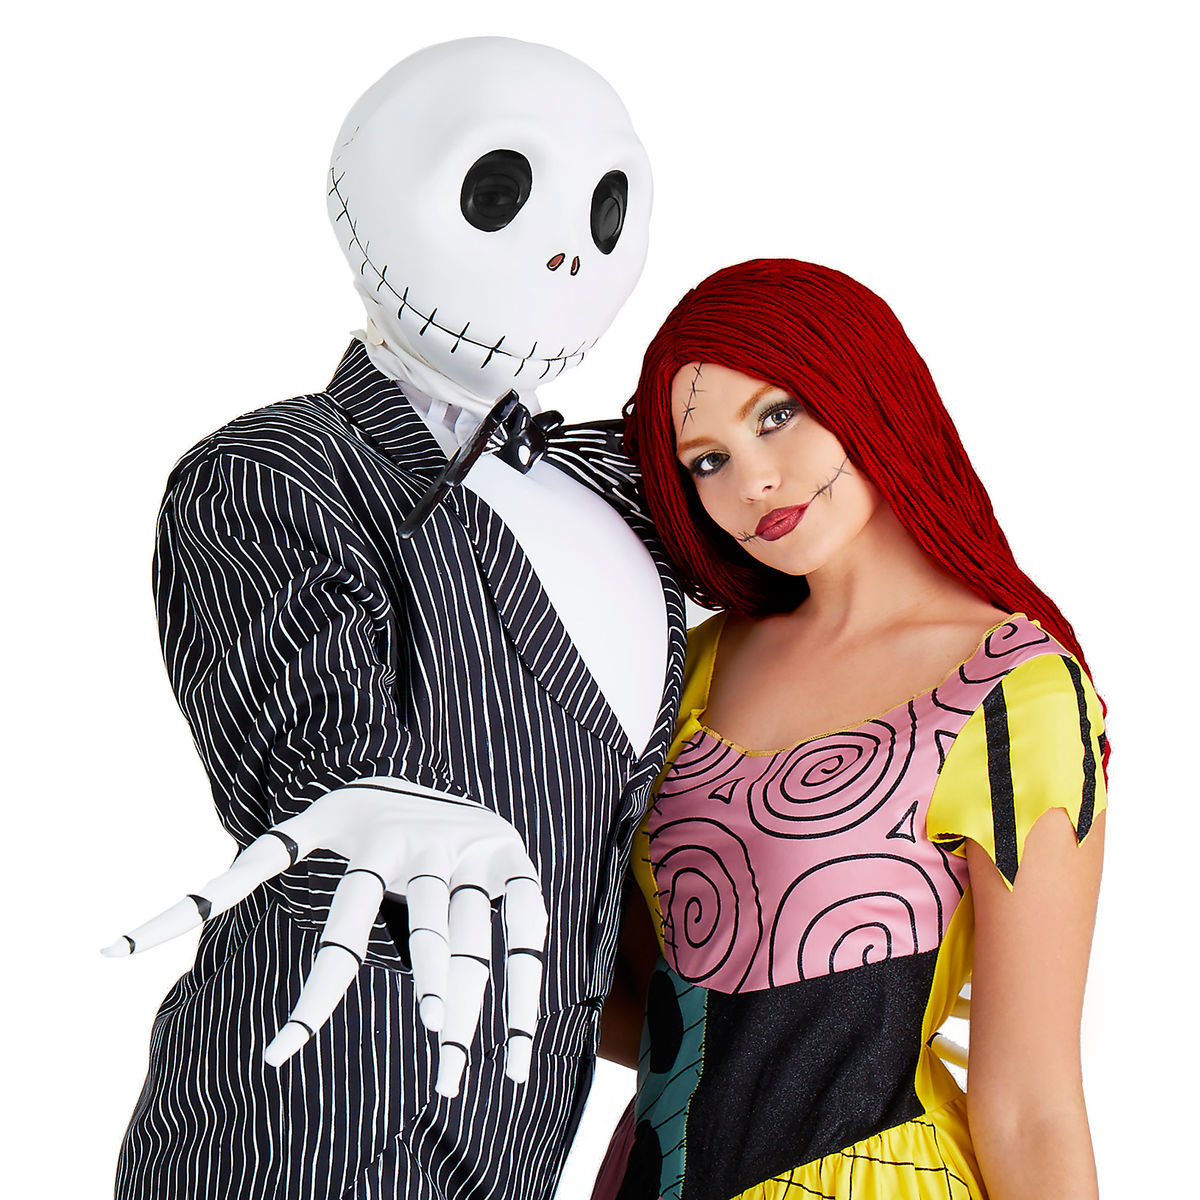 jack skellington deluxe costume for adultsdisguise   shopdisney